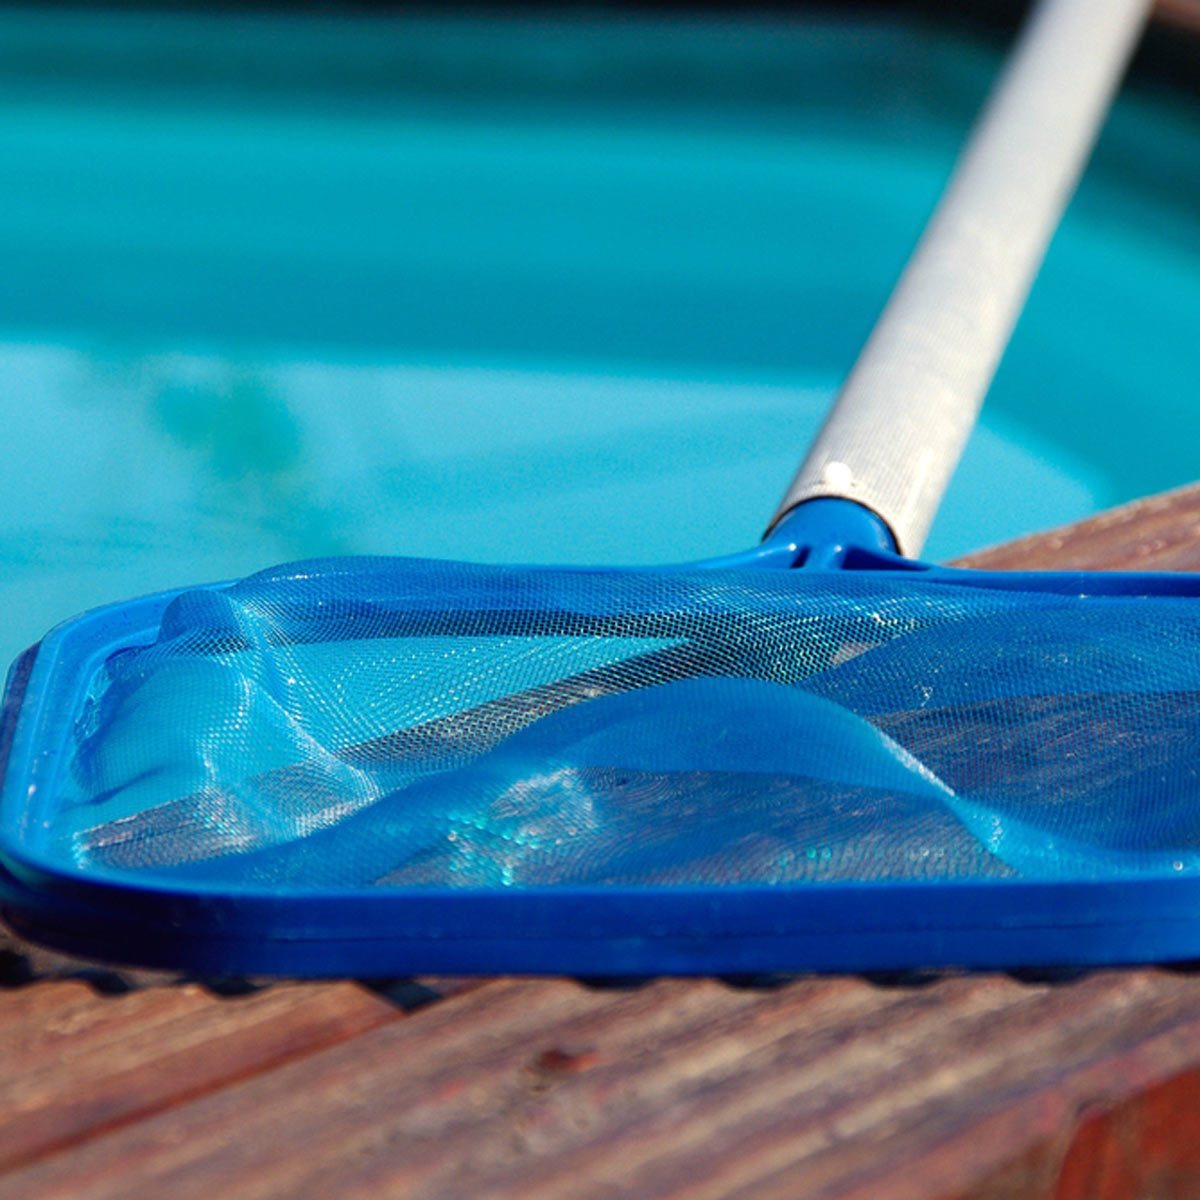 blue pool net cleaner laying beside a pool